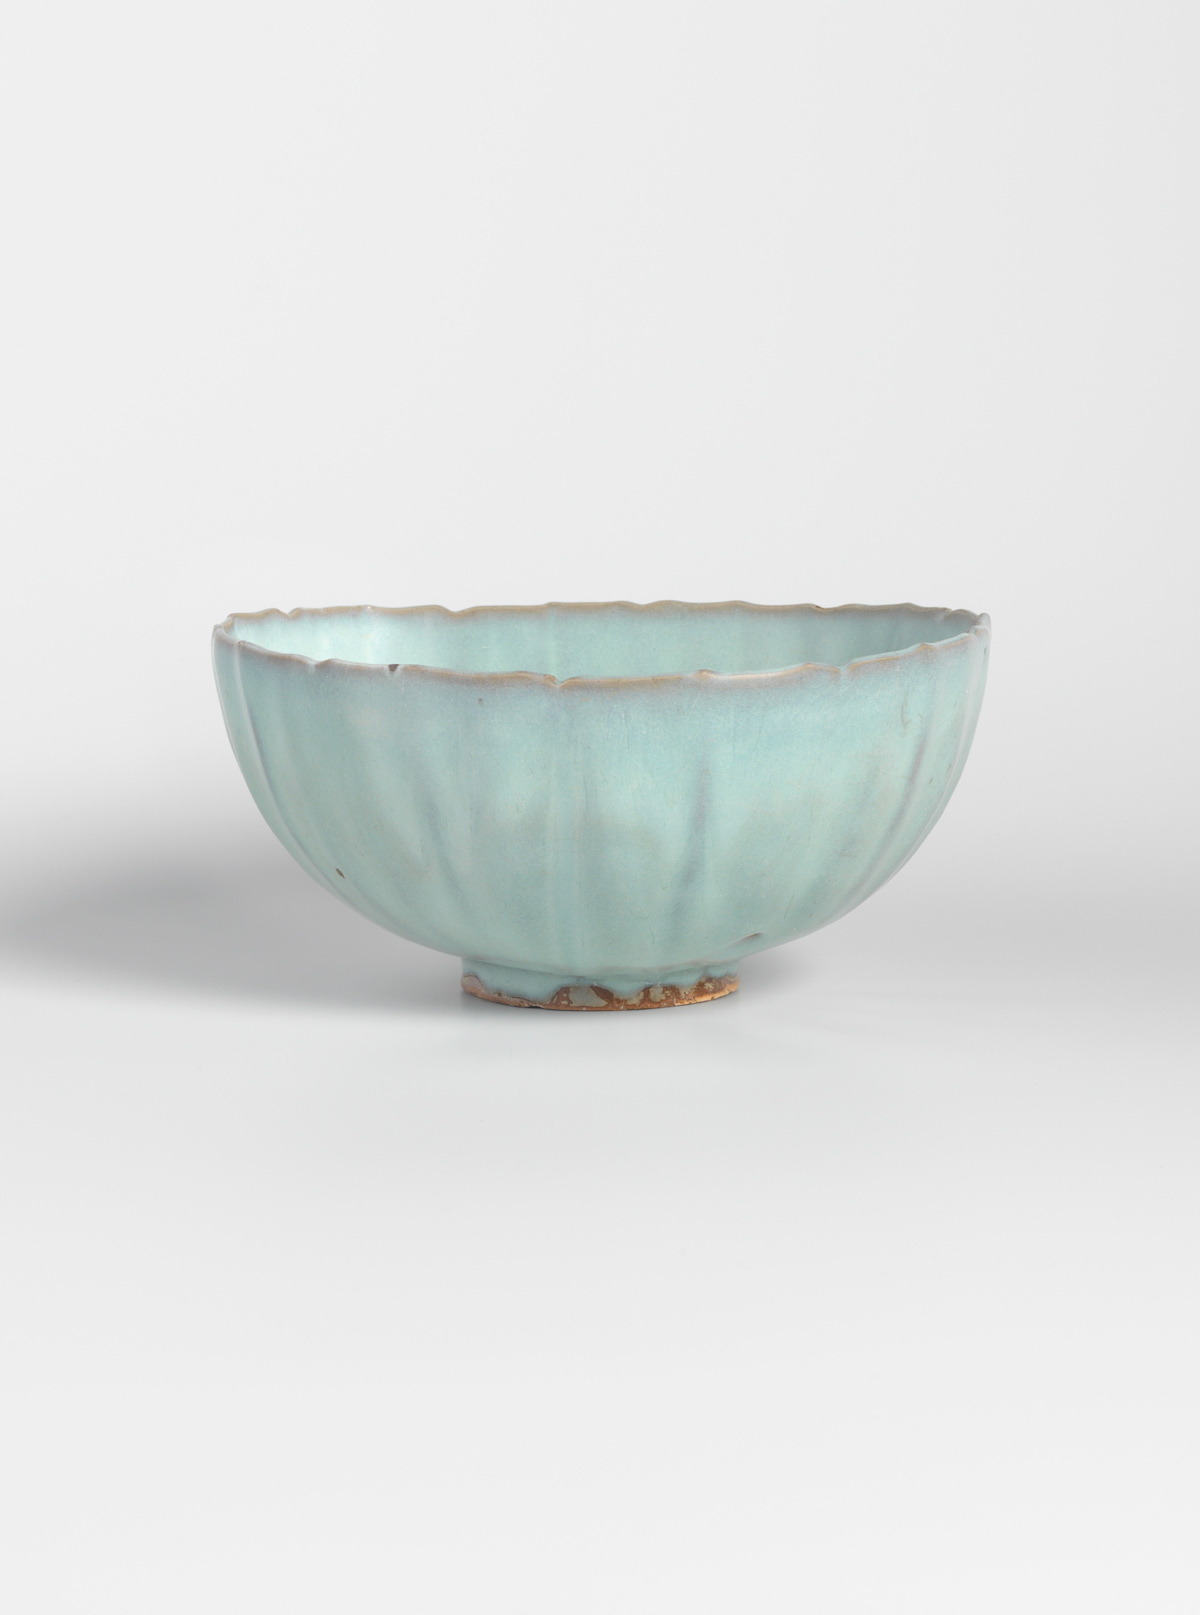 Glazed stoneware bowl with foliate rim